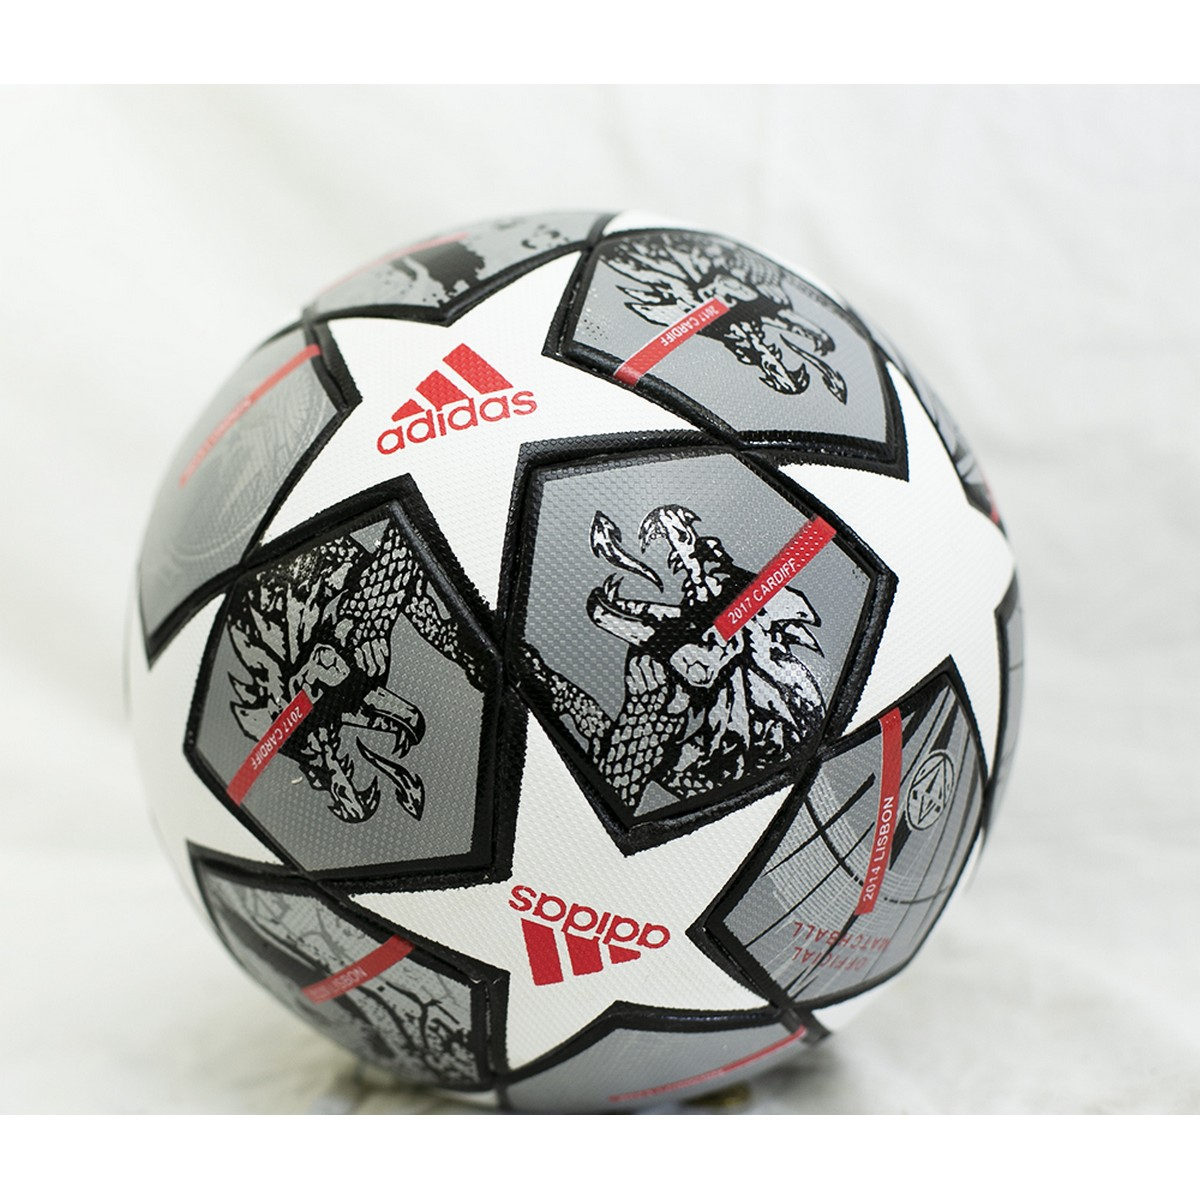 Thermal Moulded Football Size 5 Official Size and Weight